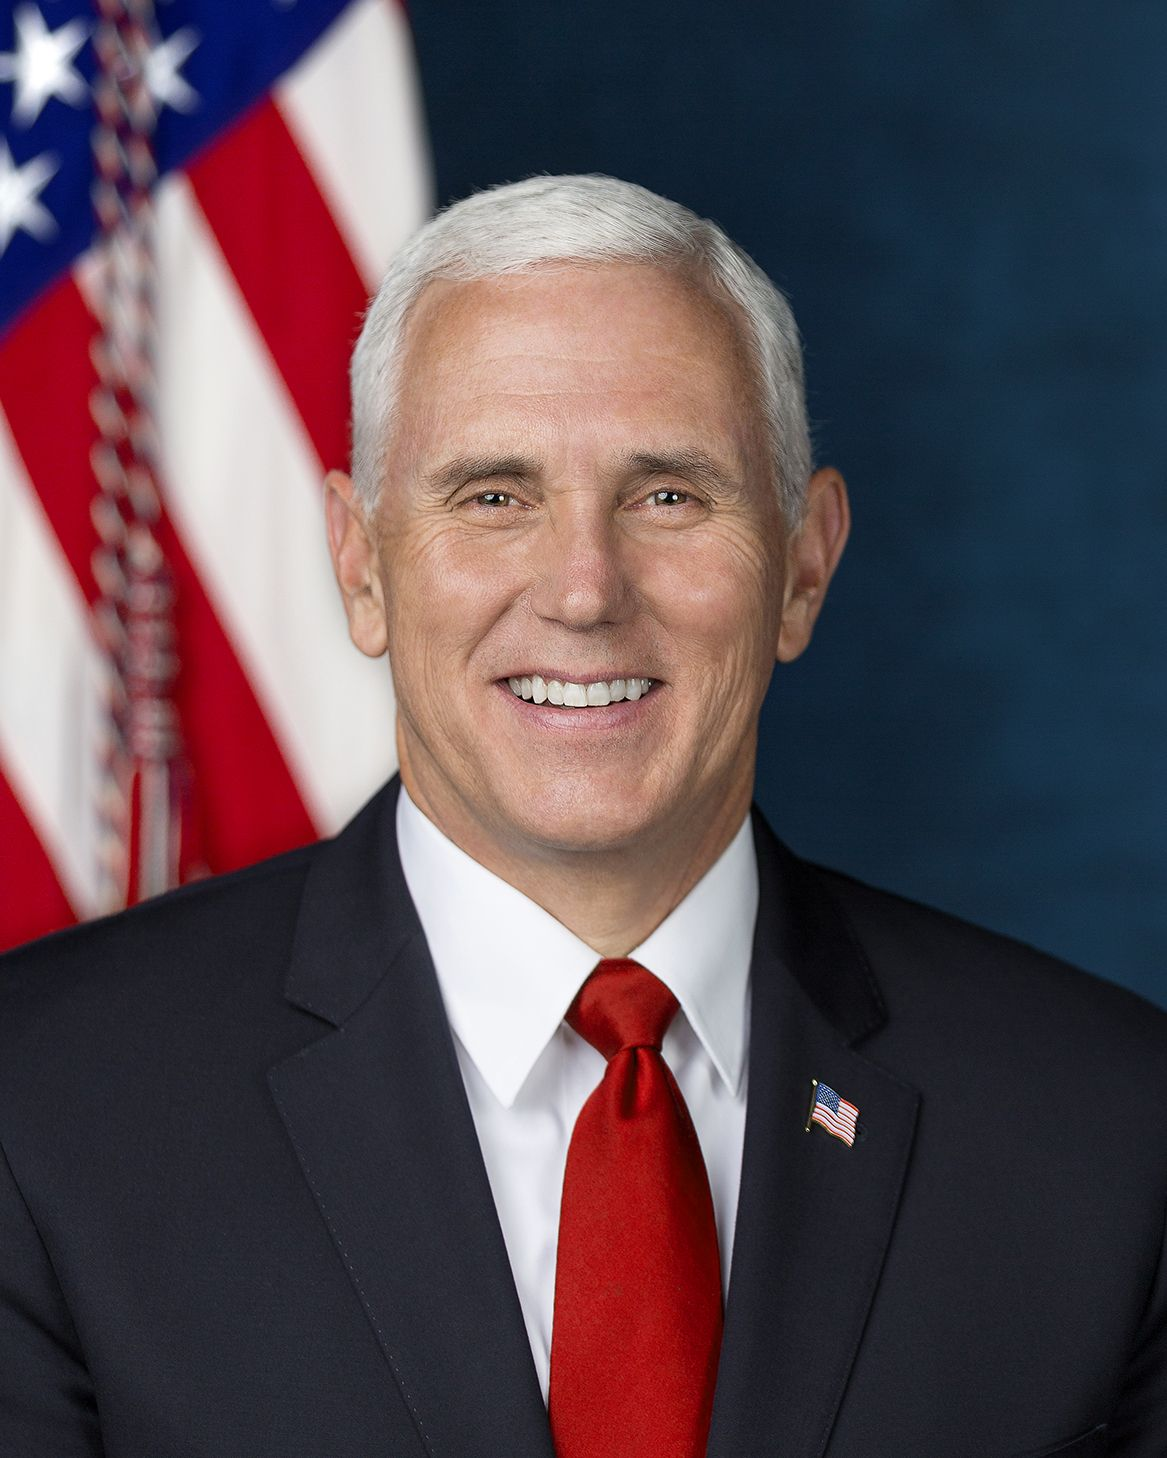 Mike Pence Official White House Photo